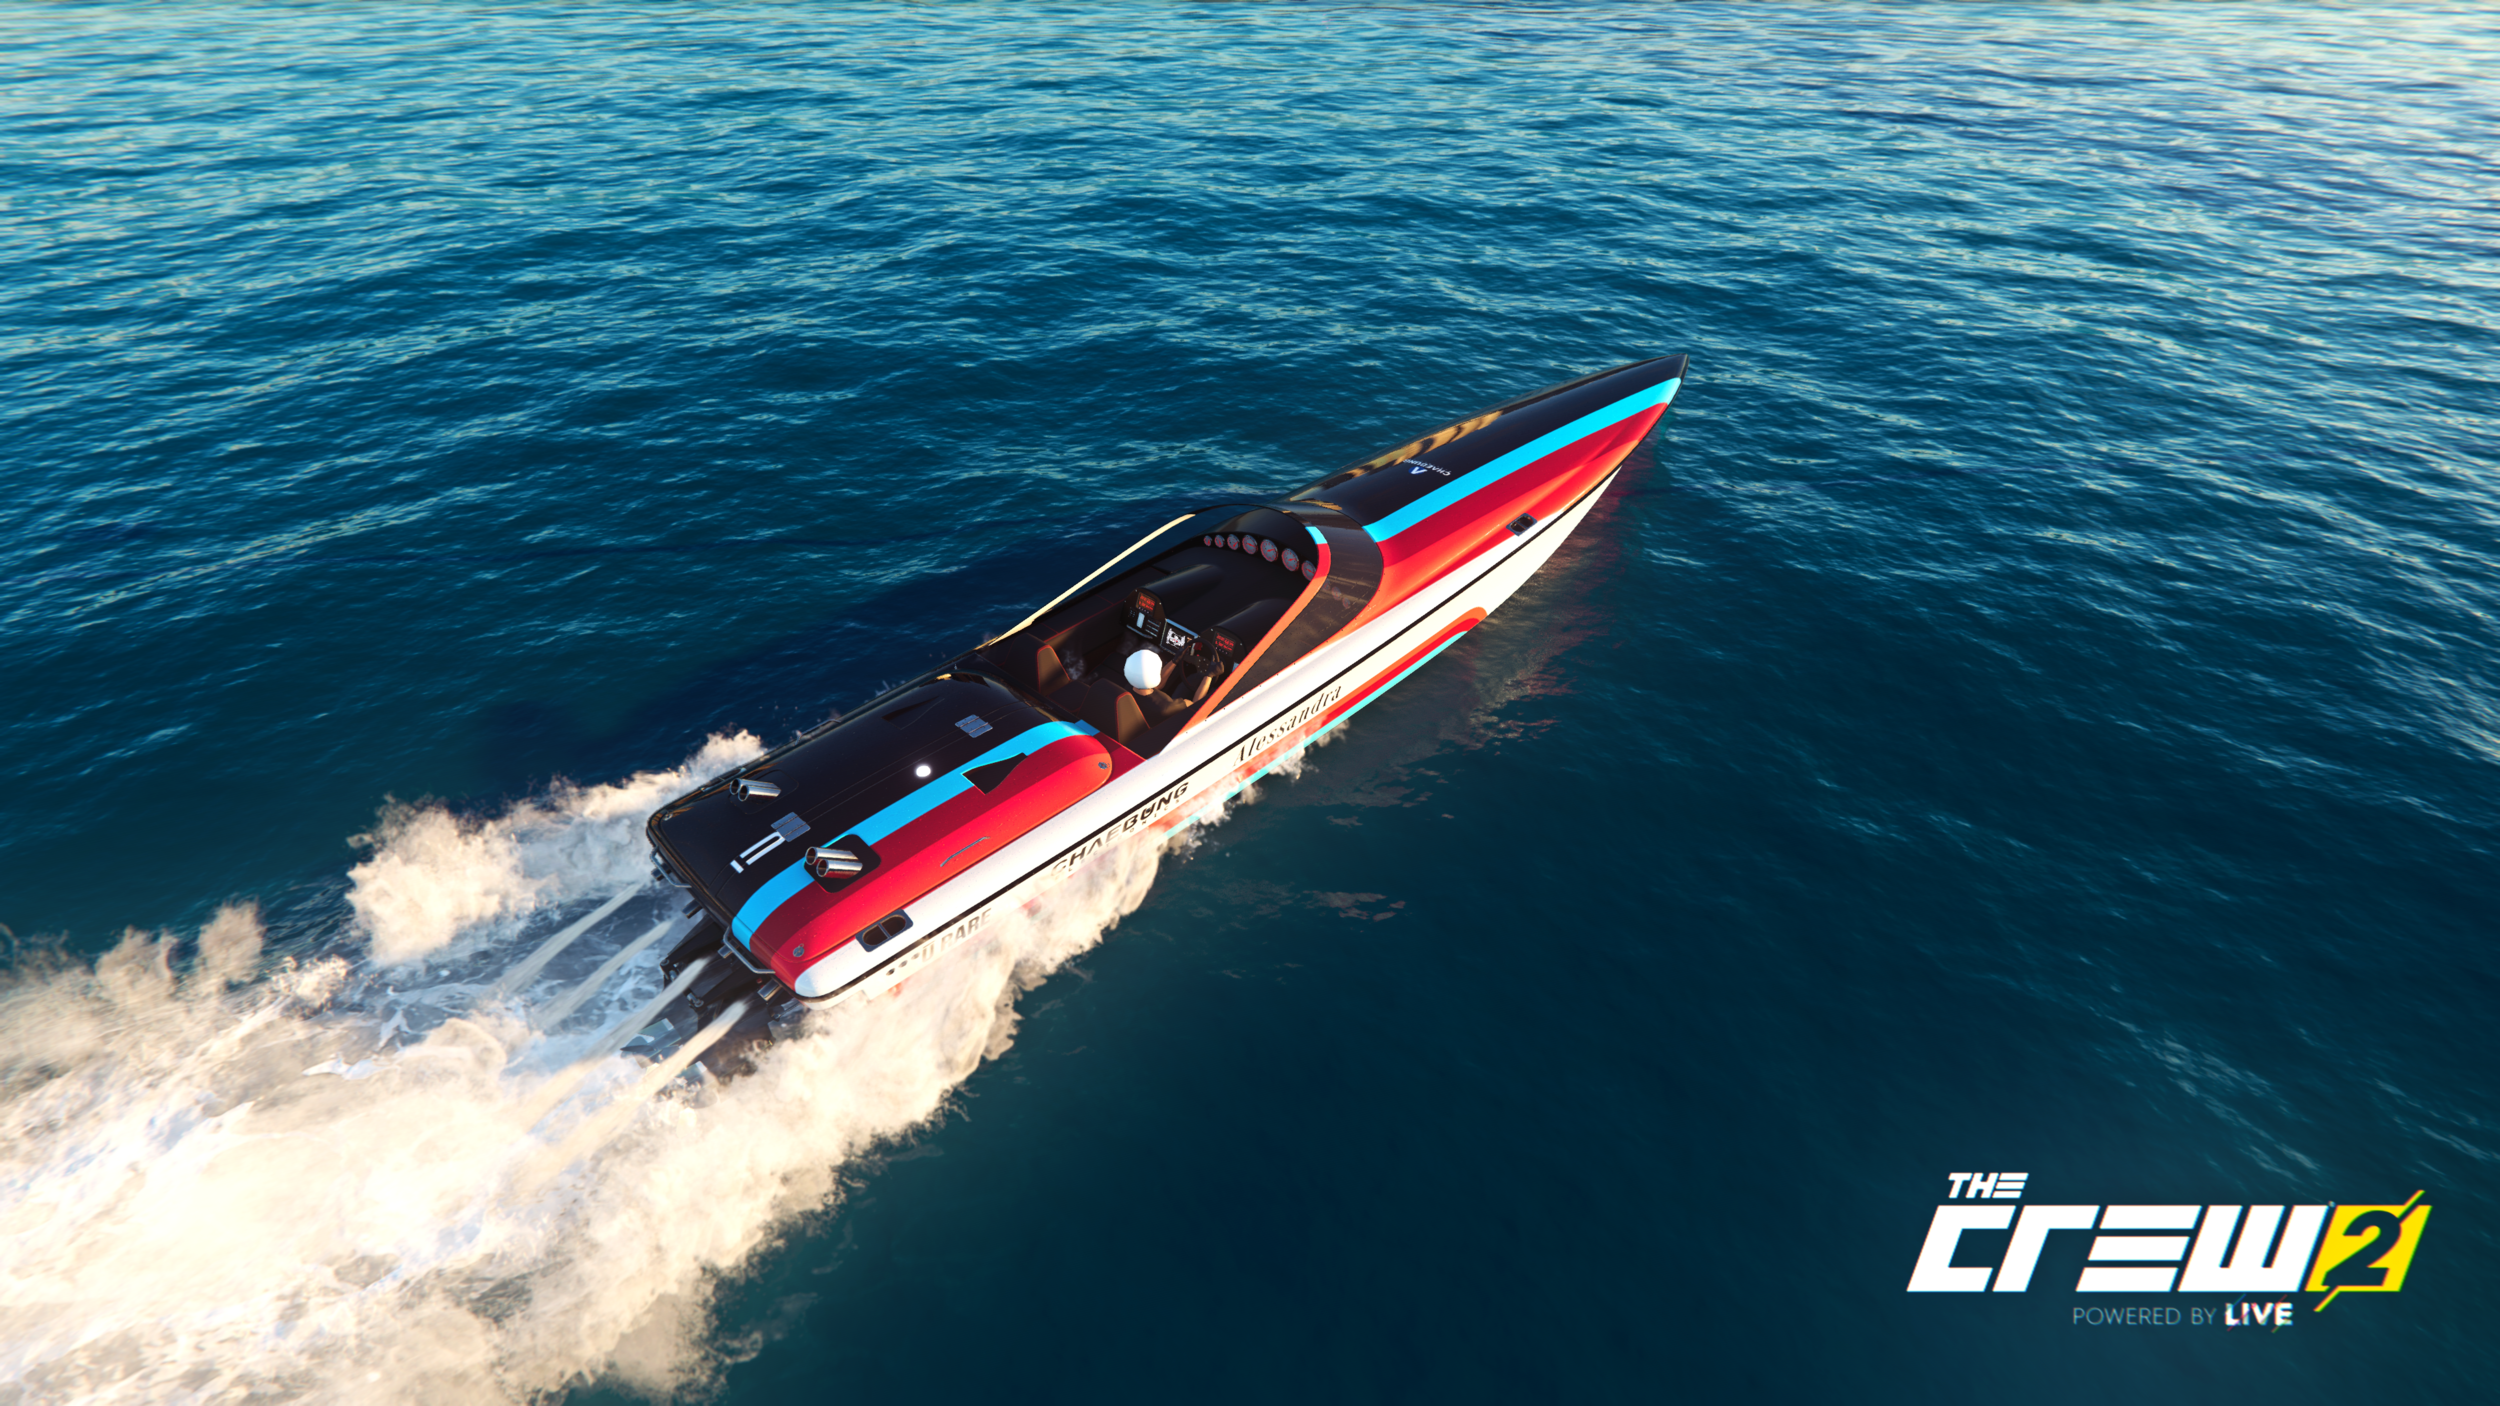 TheCrew2_2019-04-11_20-19-08.png